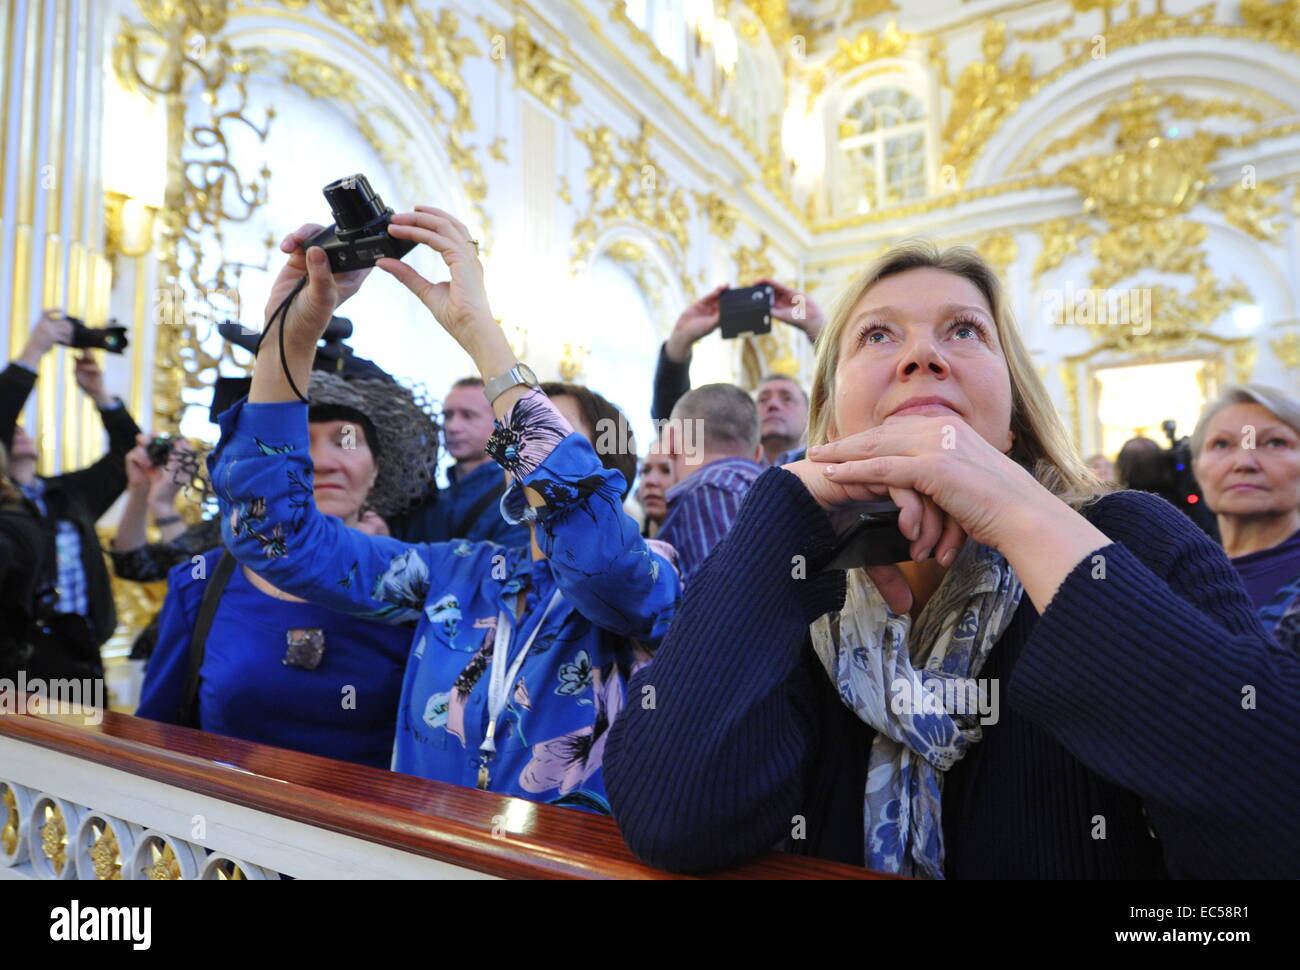 St. Petersburg, Russia. 9th Dec, 2014. Visitors at the opening of the renovated Grand Church of the Winter Palace. - Stock Image